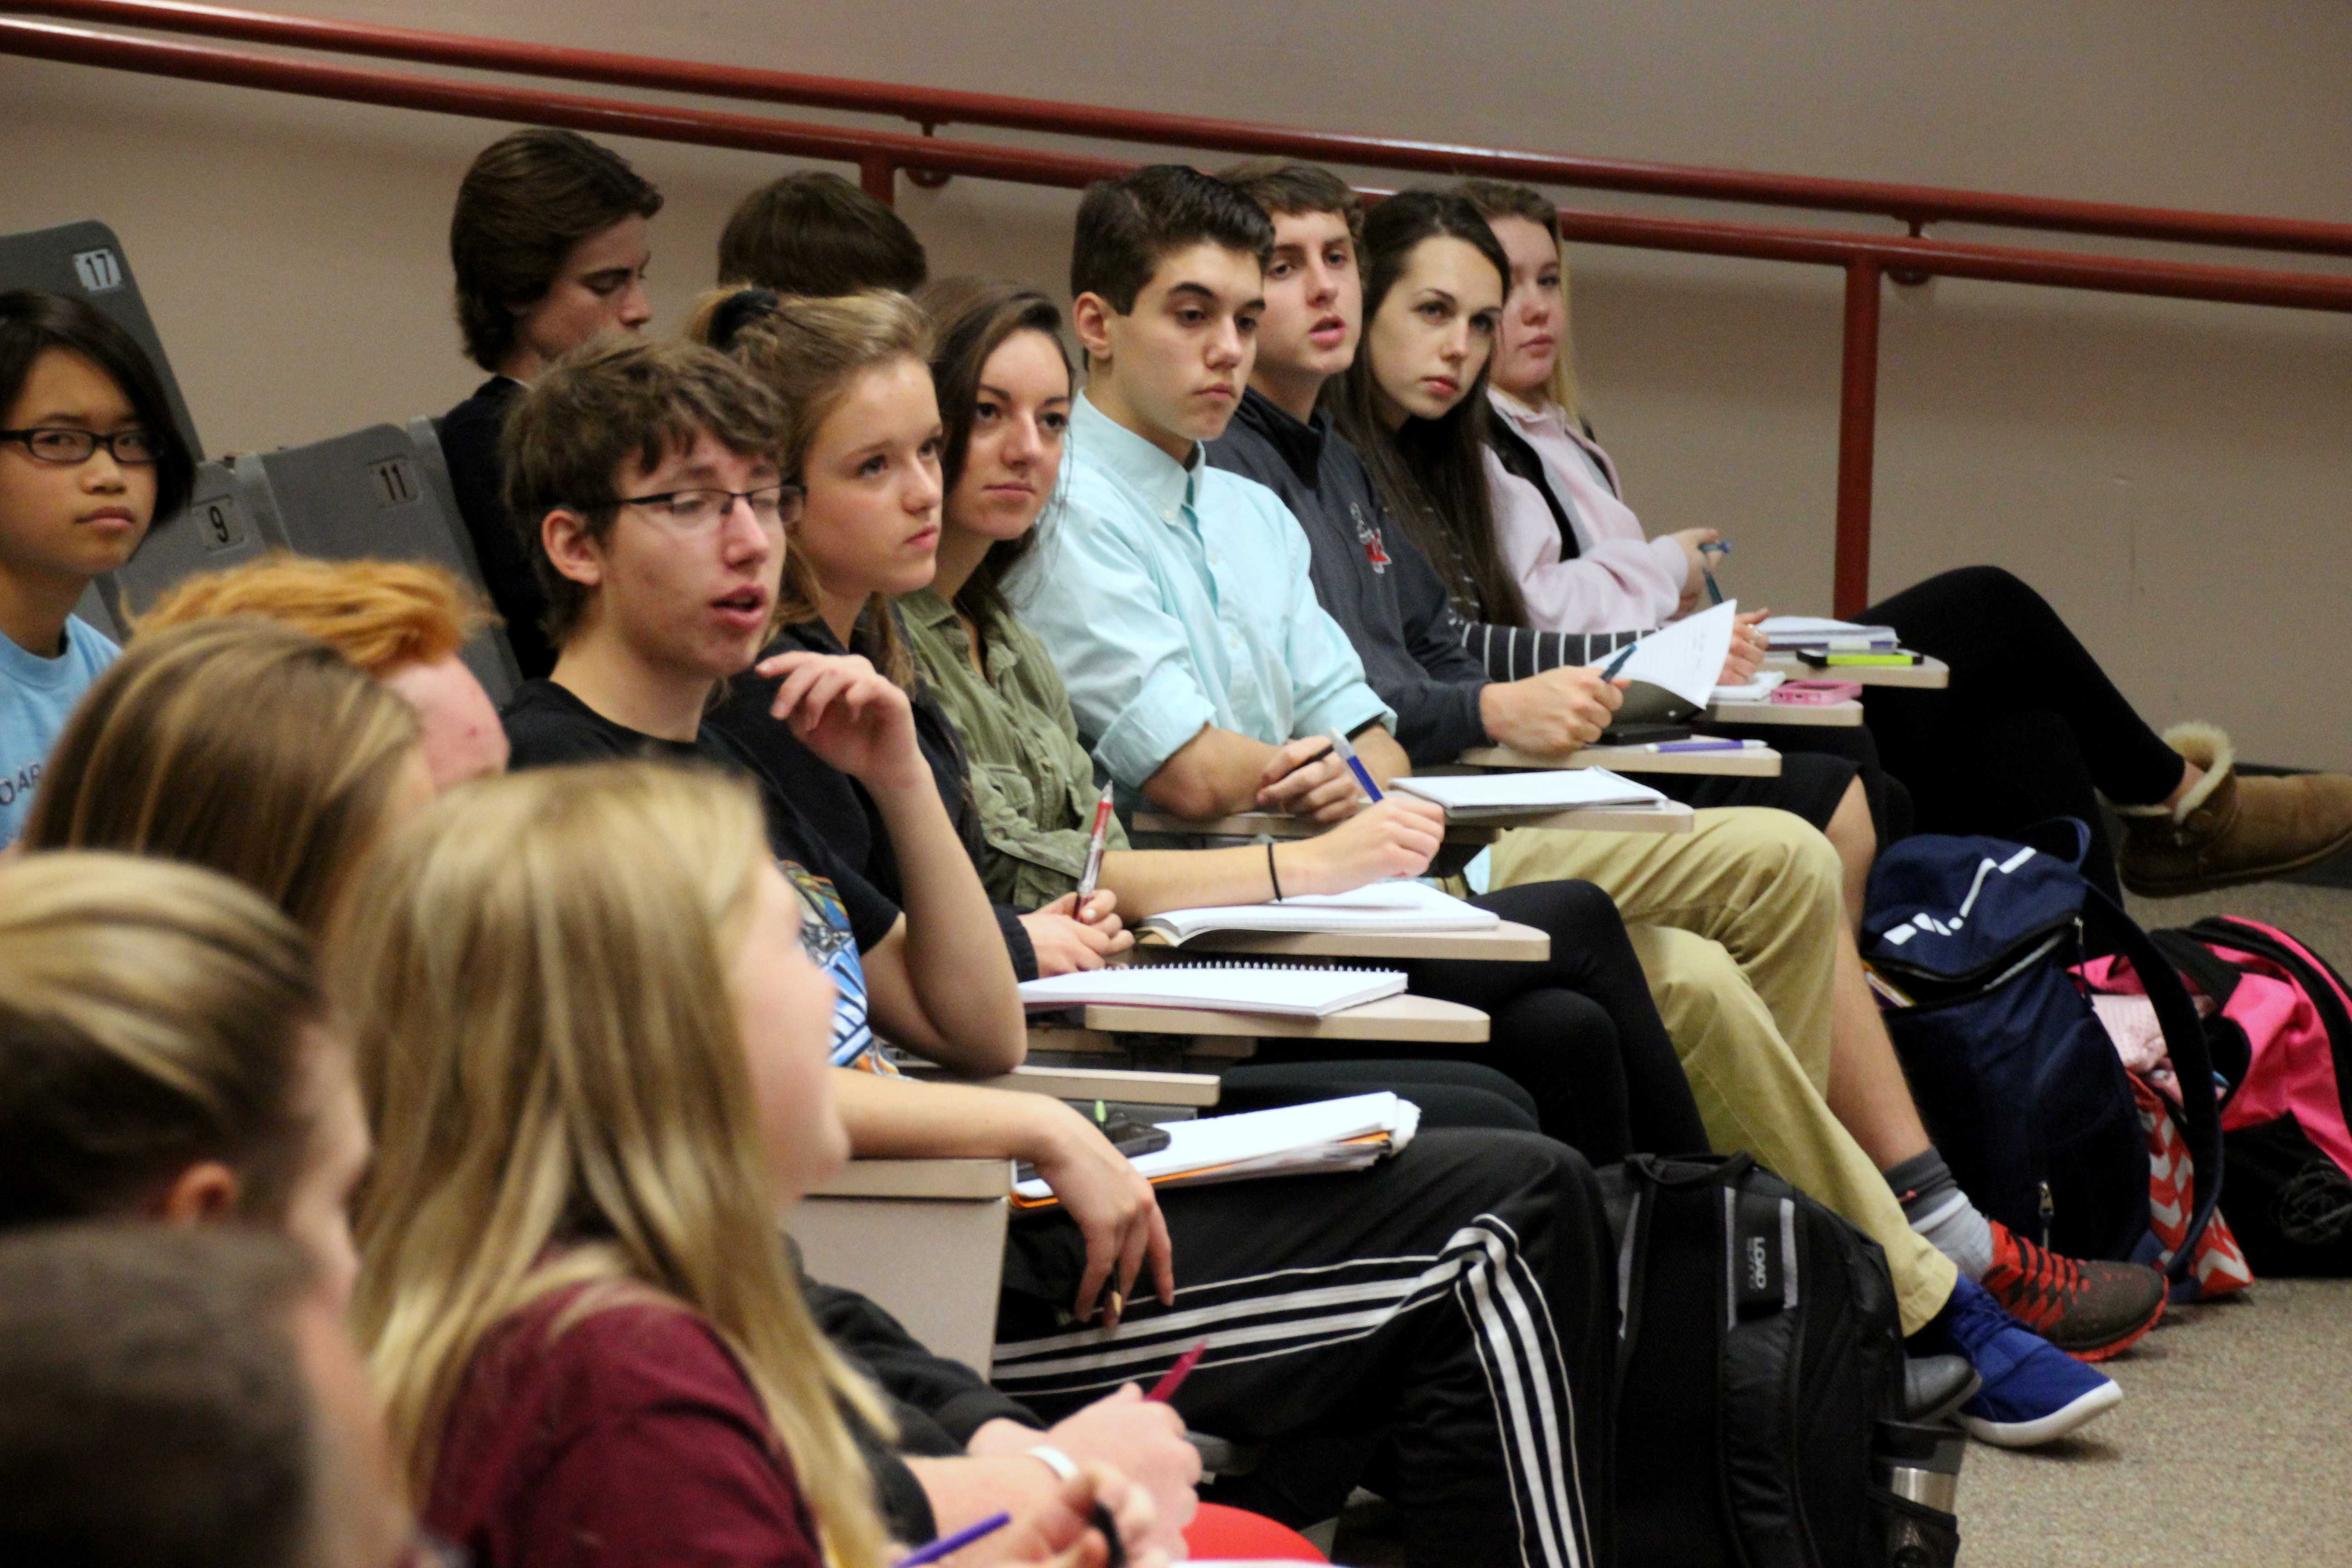 Lakeville North students listen as Kurpius speaks about where journalism is headed.